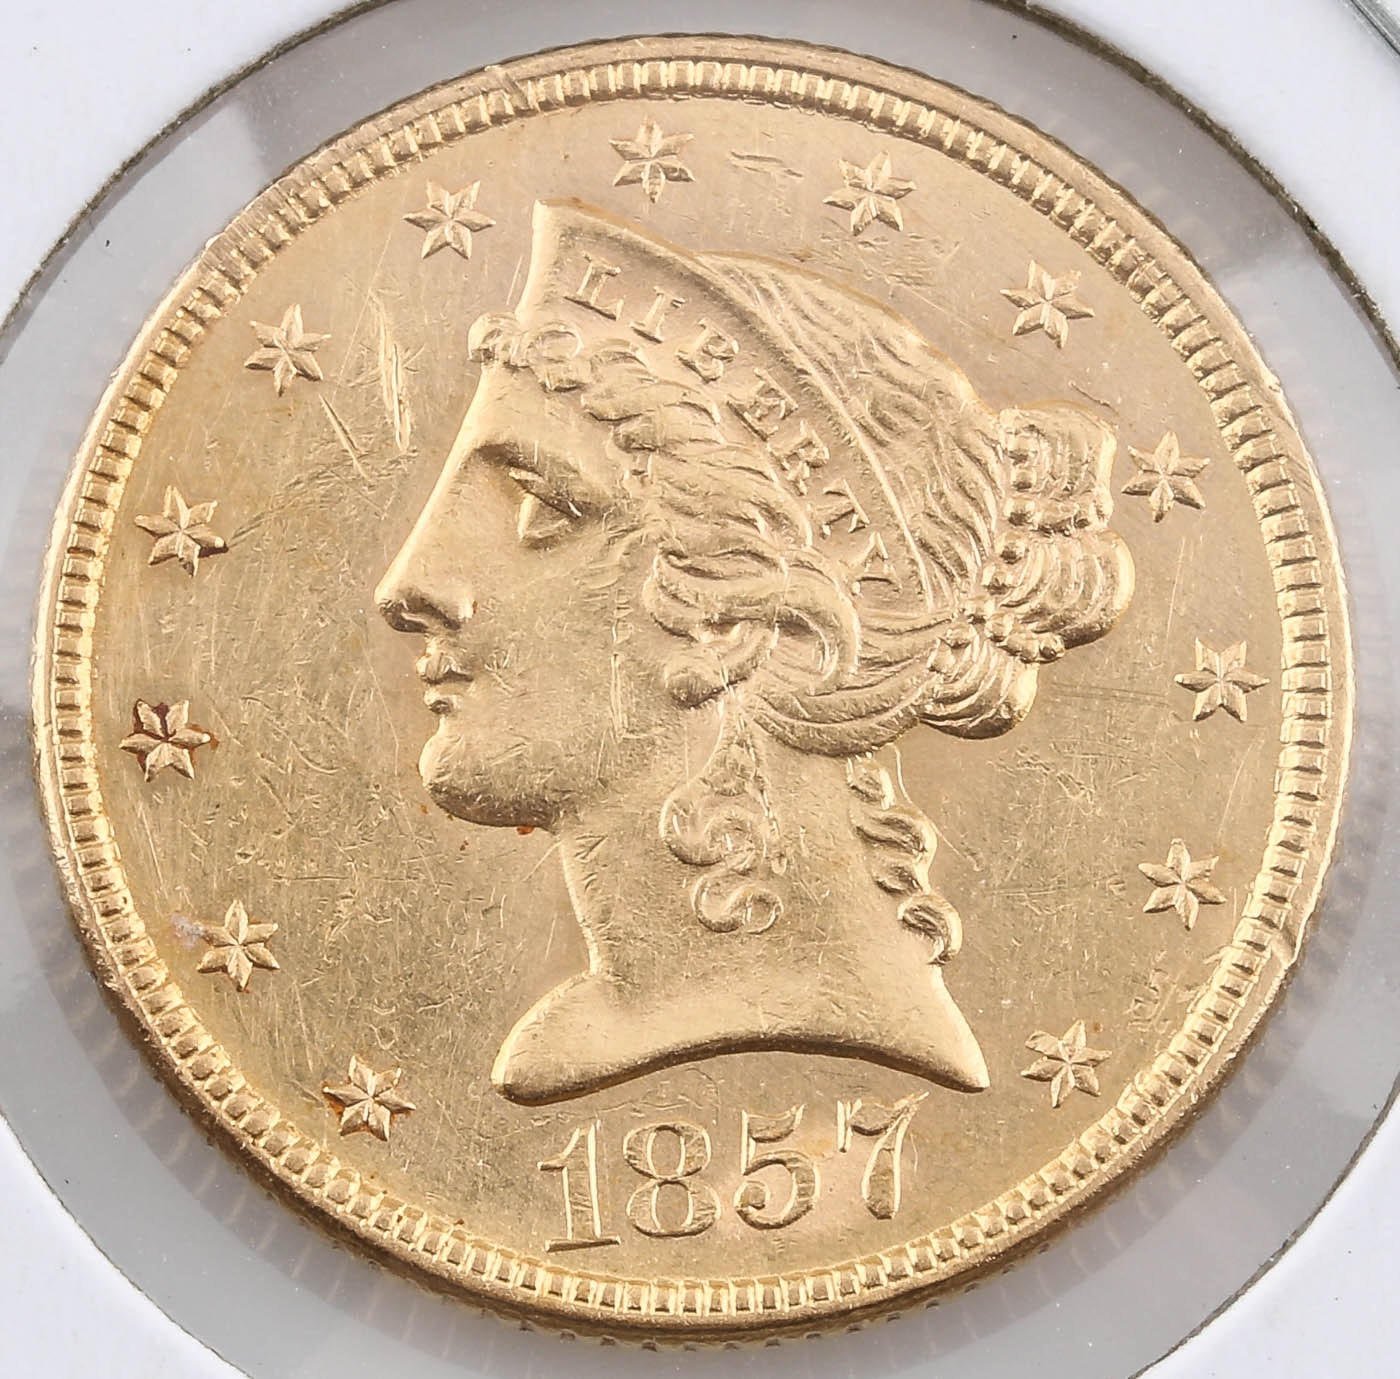 1857 Liberty Head $5 Gold Coin